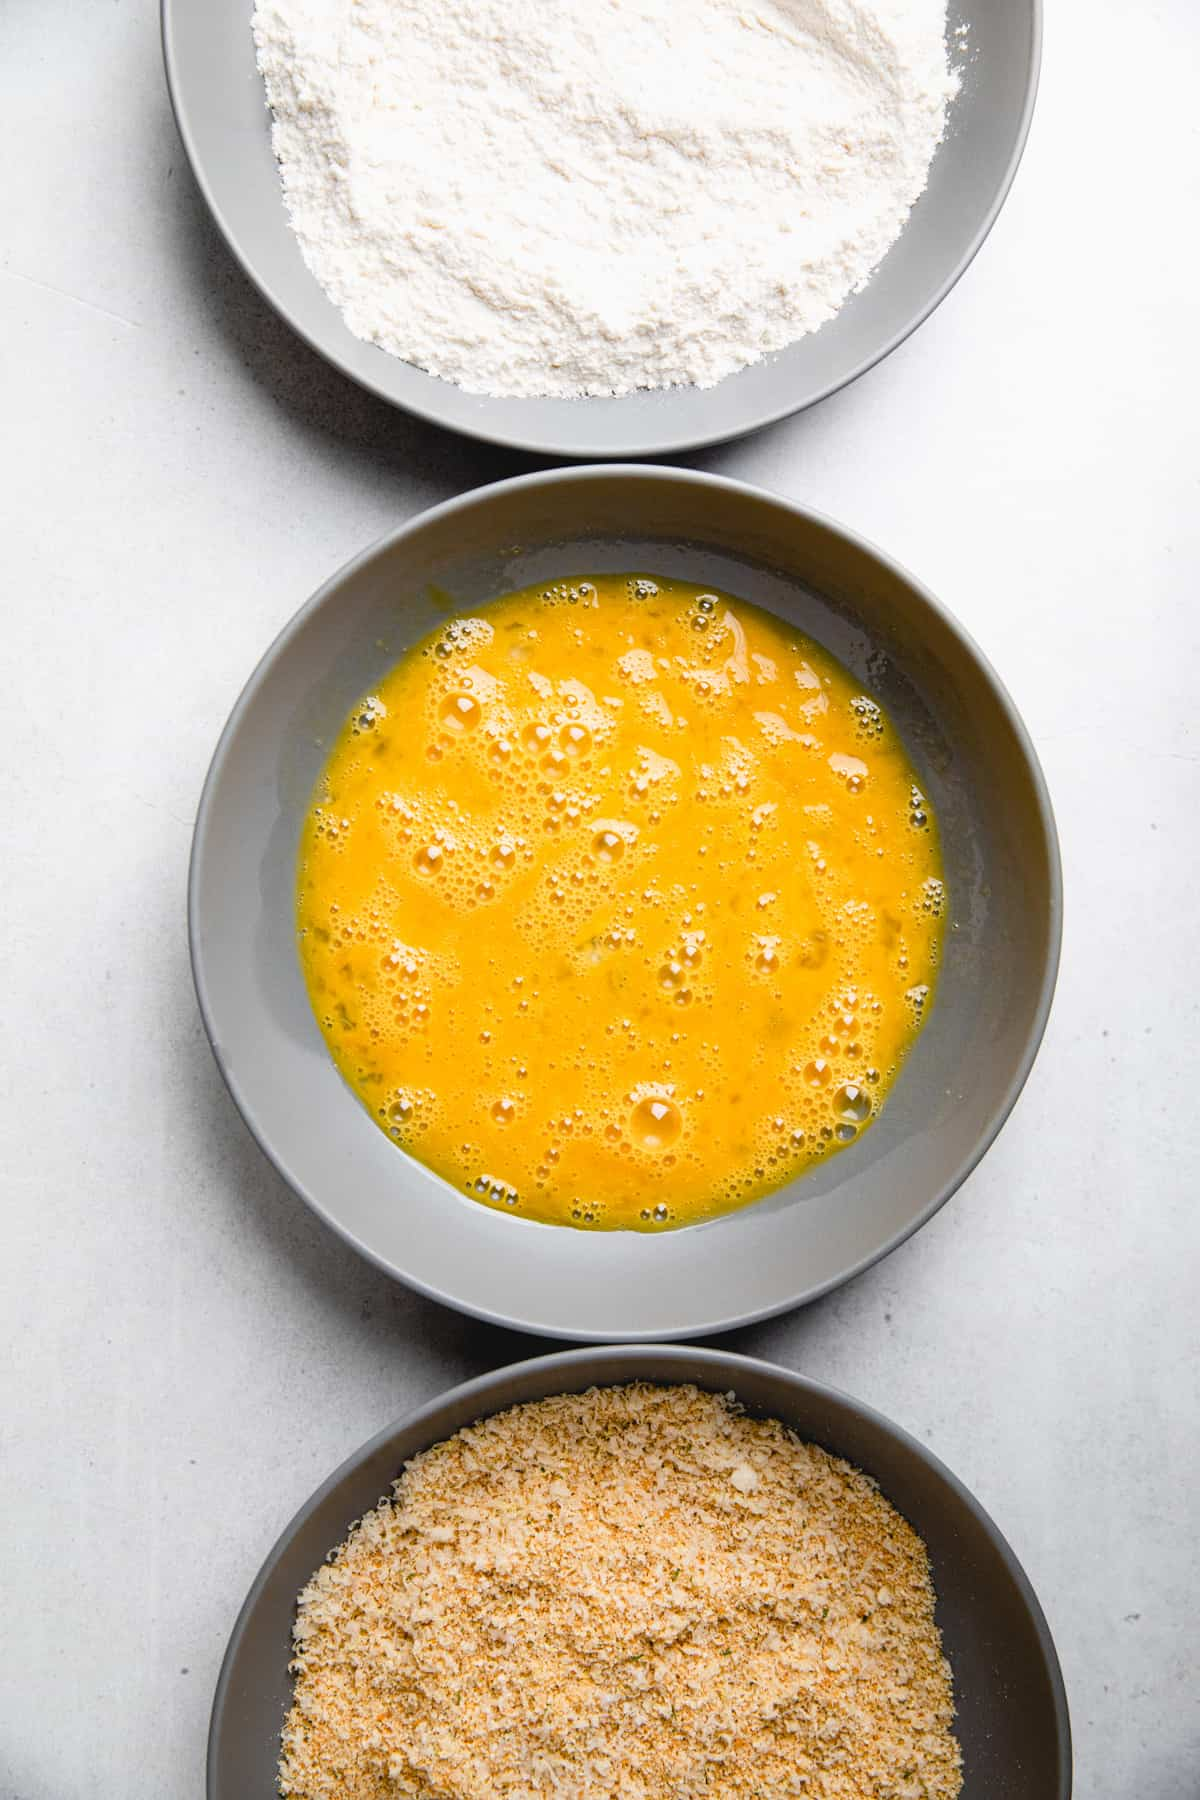 Three bowls filled with flour, eggs, and breadcrumb mixture.